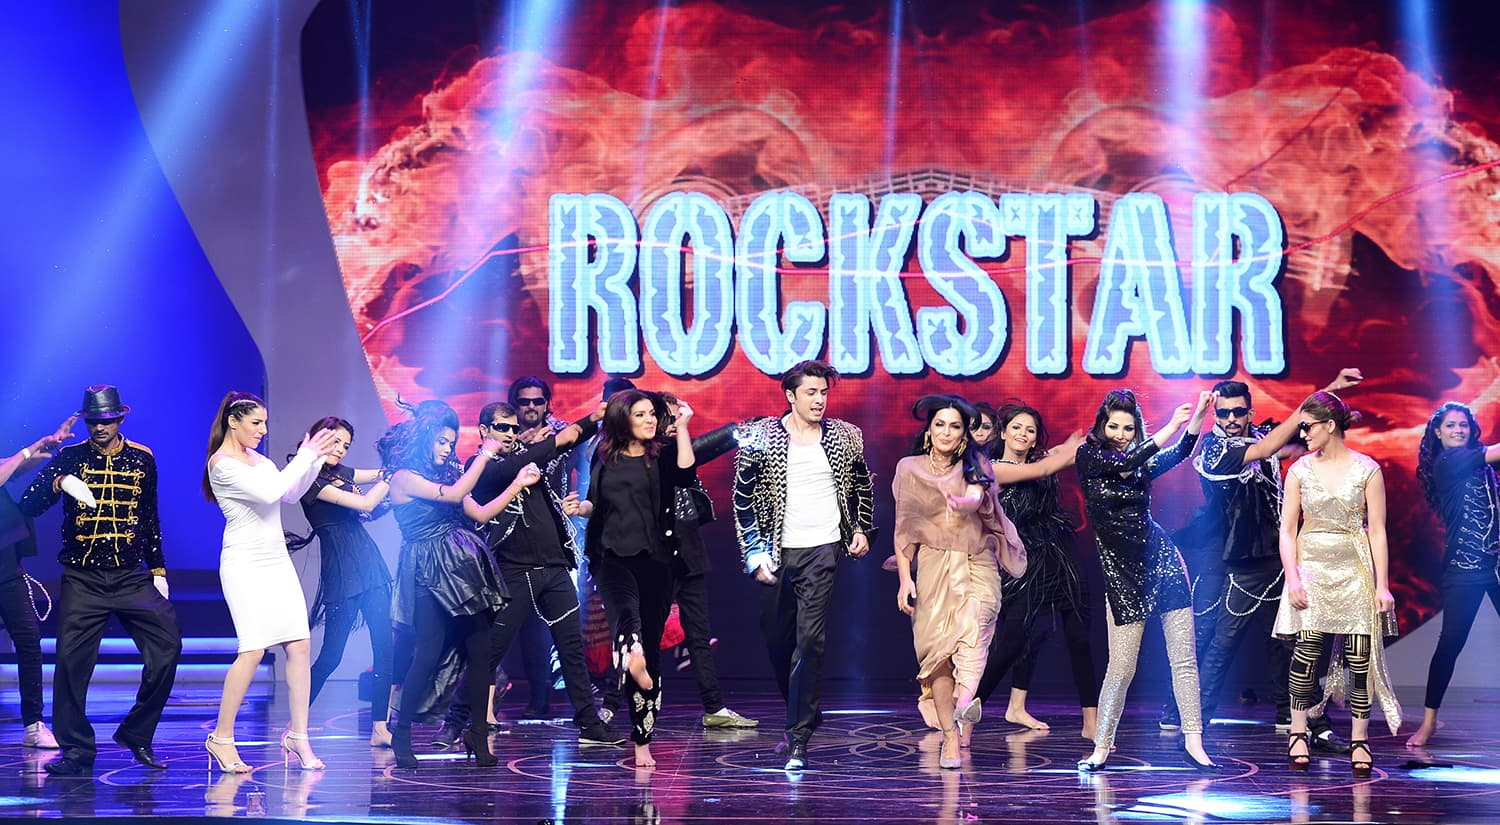 One of the best moments of the night featured the 'Rockstar' with his famous friends, Meera and Resham – Publicity photo